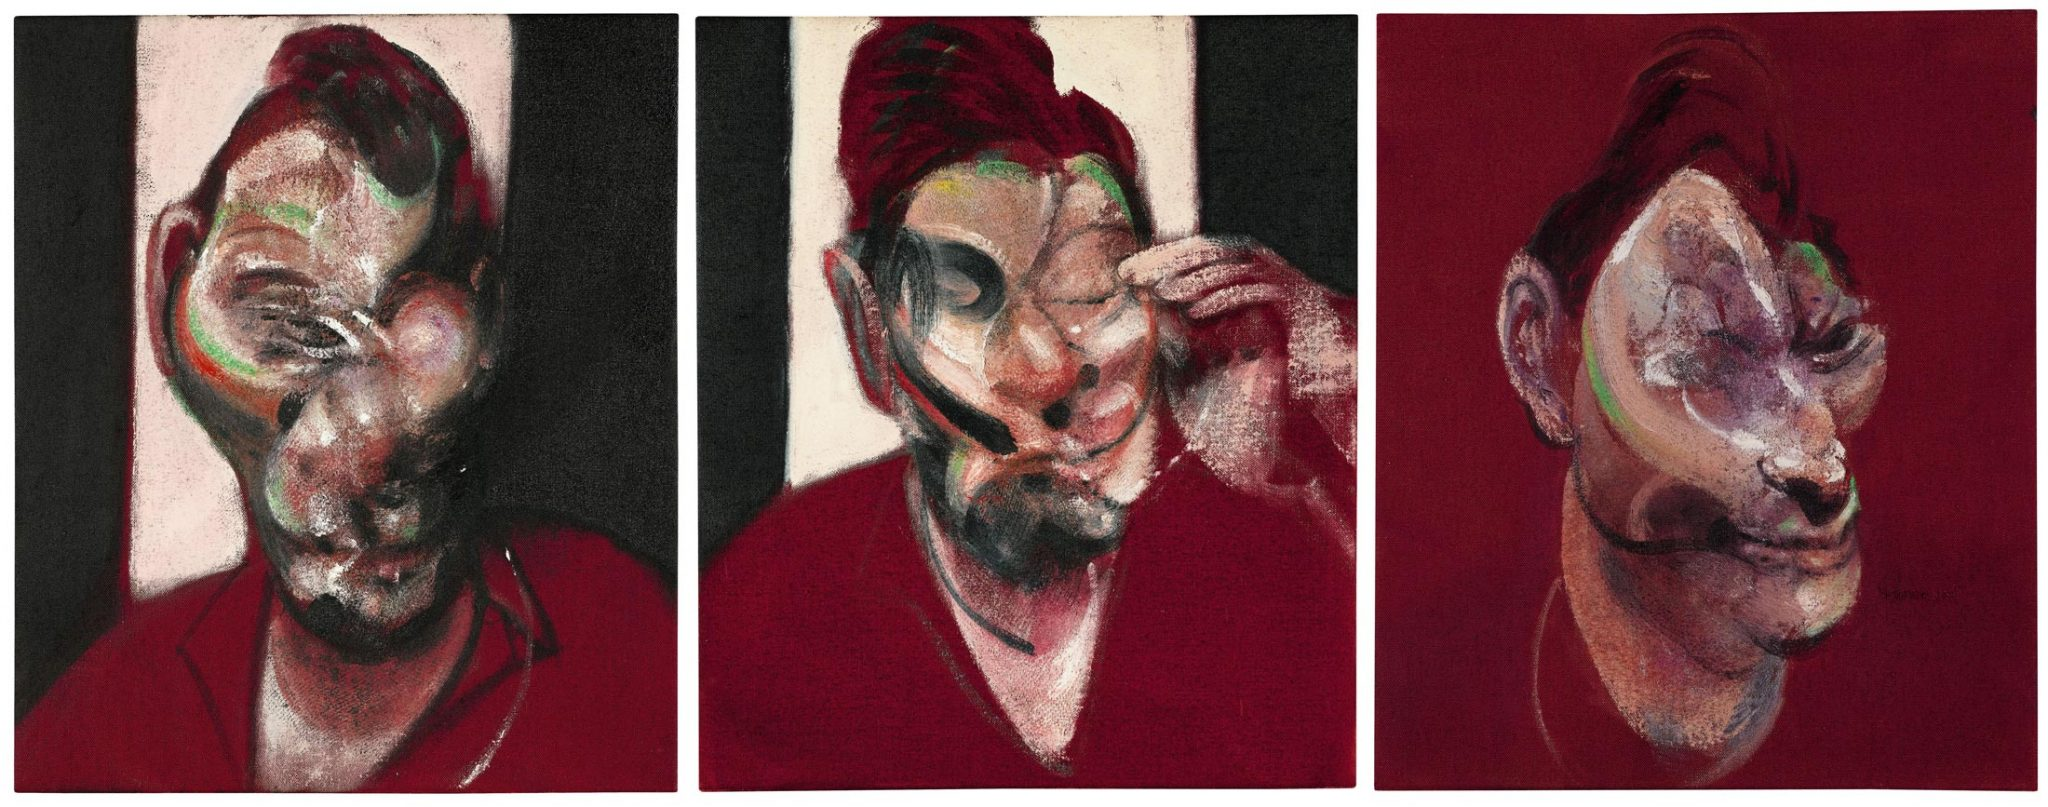 Francis Bacon, Three Studies for a portrait of Lucian Freud, 1965